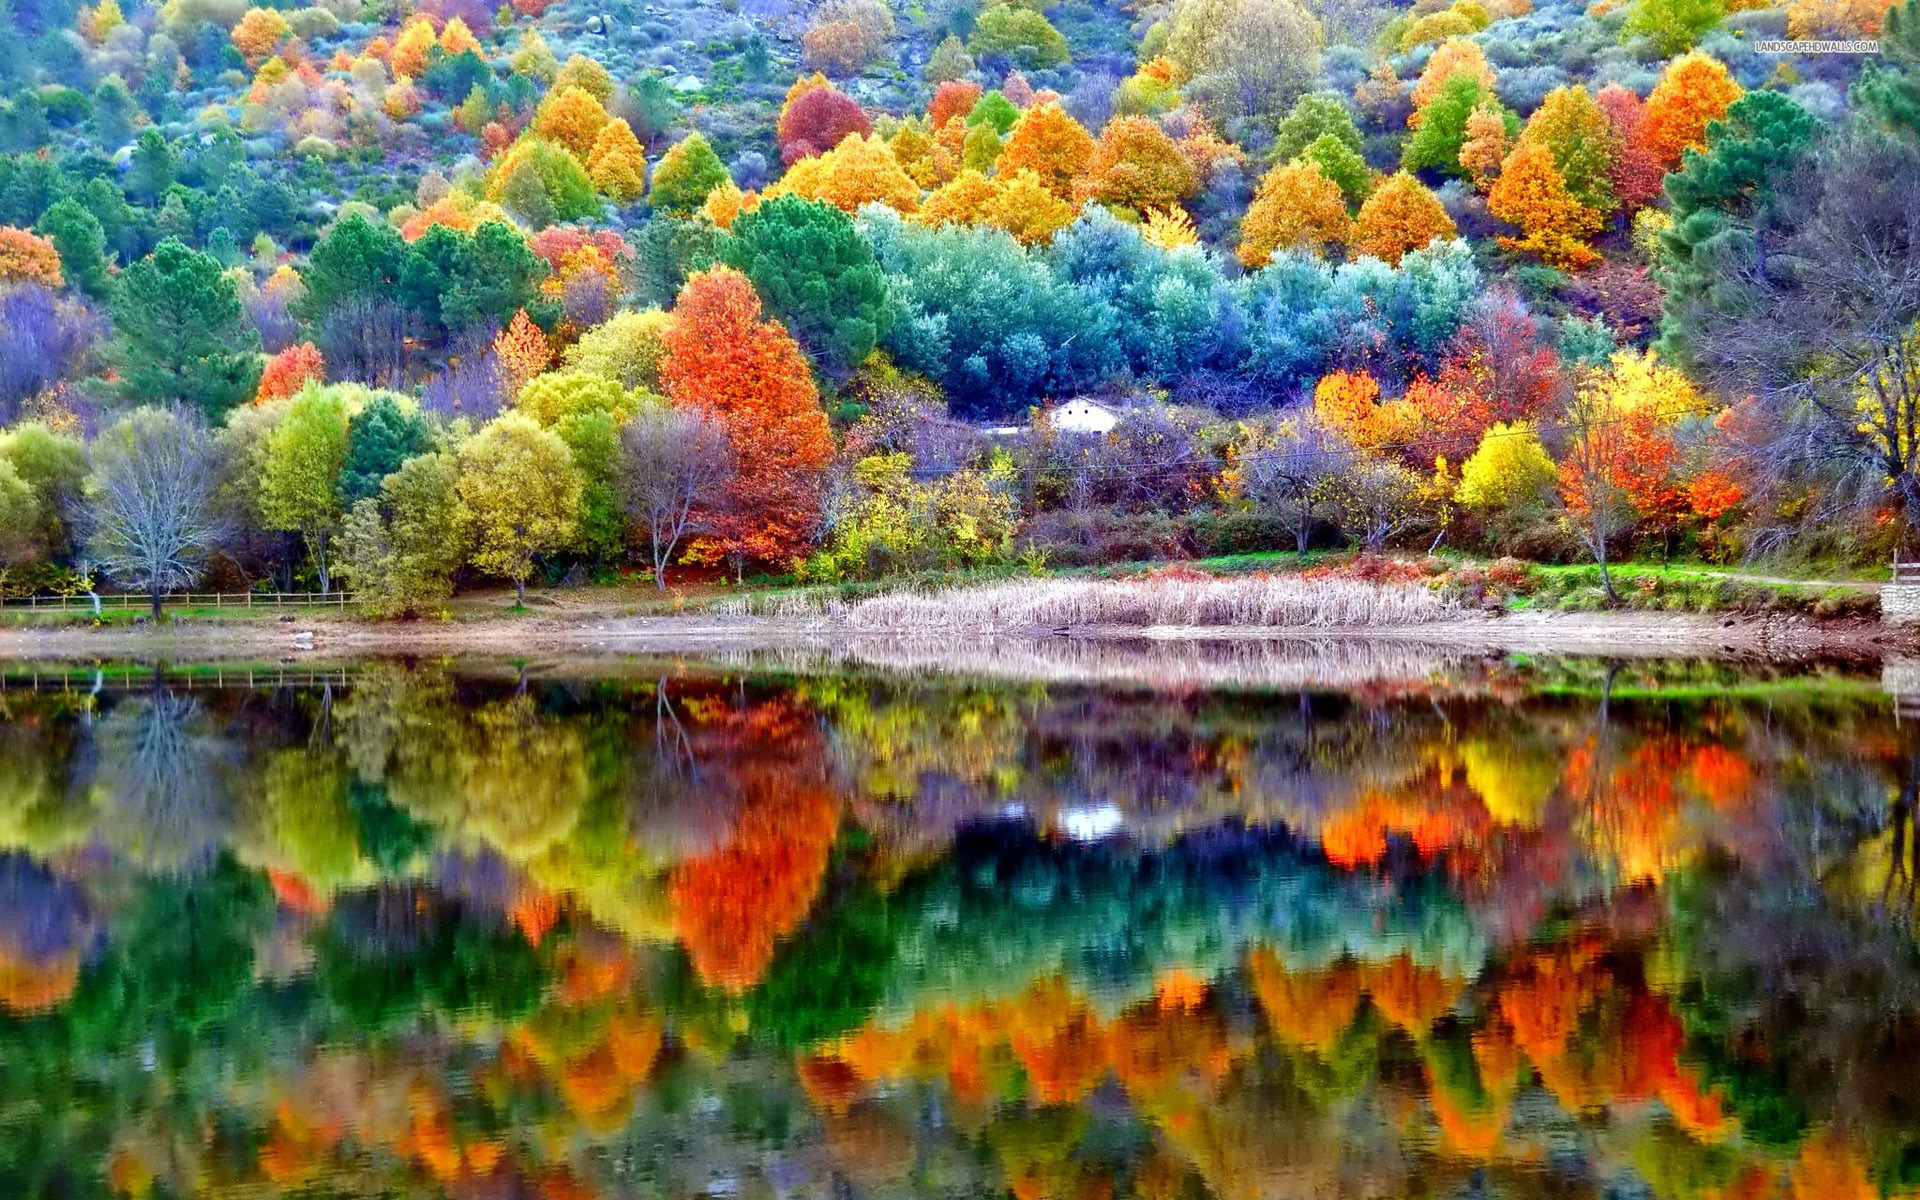 Autumn Scenery Hd Nature 4k Wallpapers Images Backgrounds Photos And Pictures